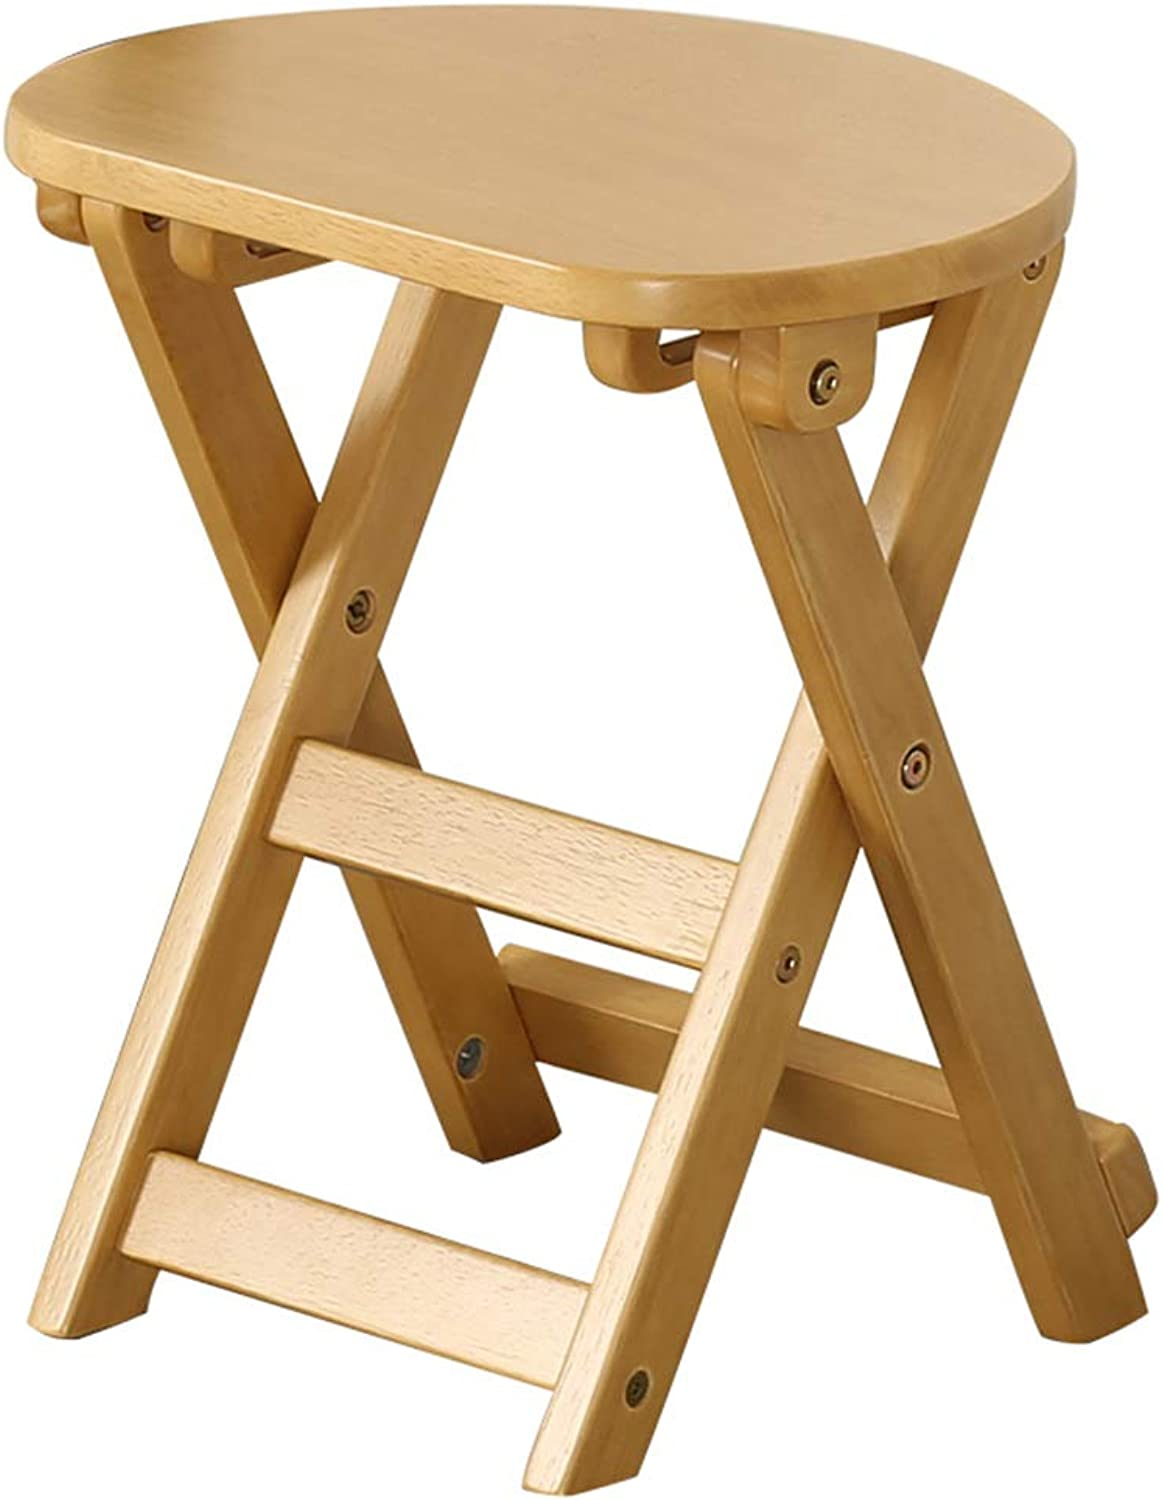 Stool Modern Minimalist Folding Stool Portable Solid Wood Makeup Stool Dining Stool Multifunctional Learning Stool WEIYV (color   Wood-color, Size   29  35  43cm)